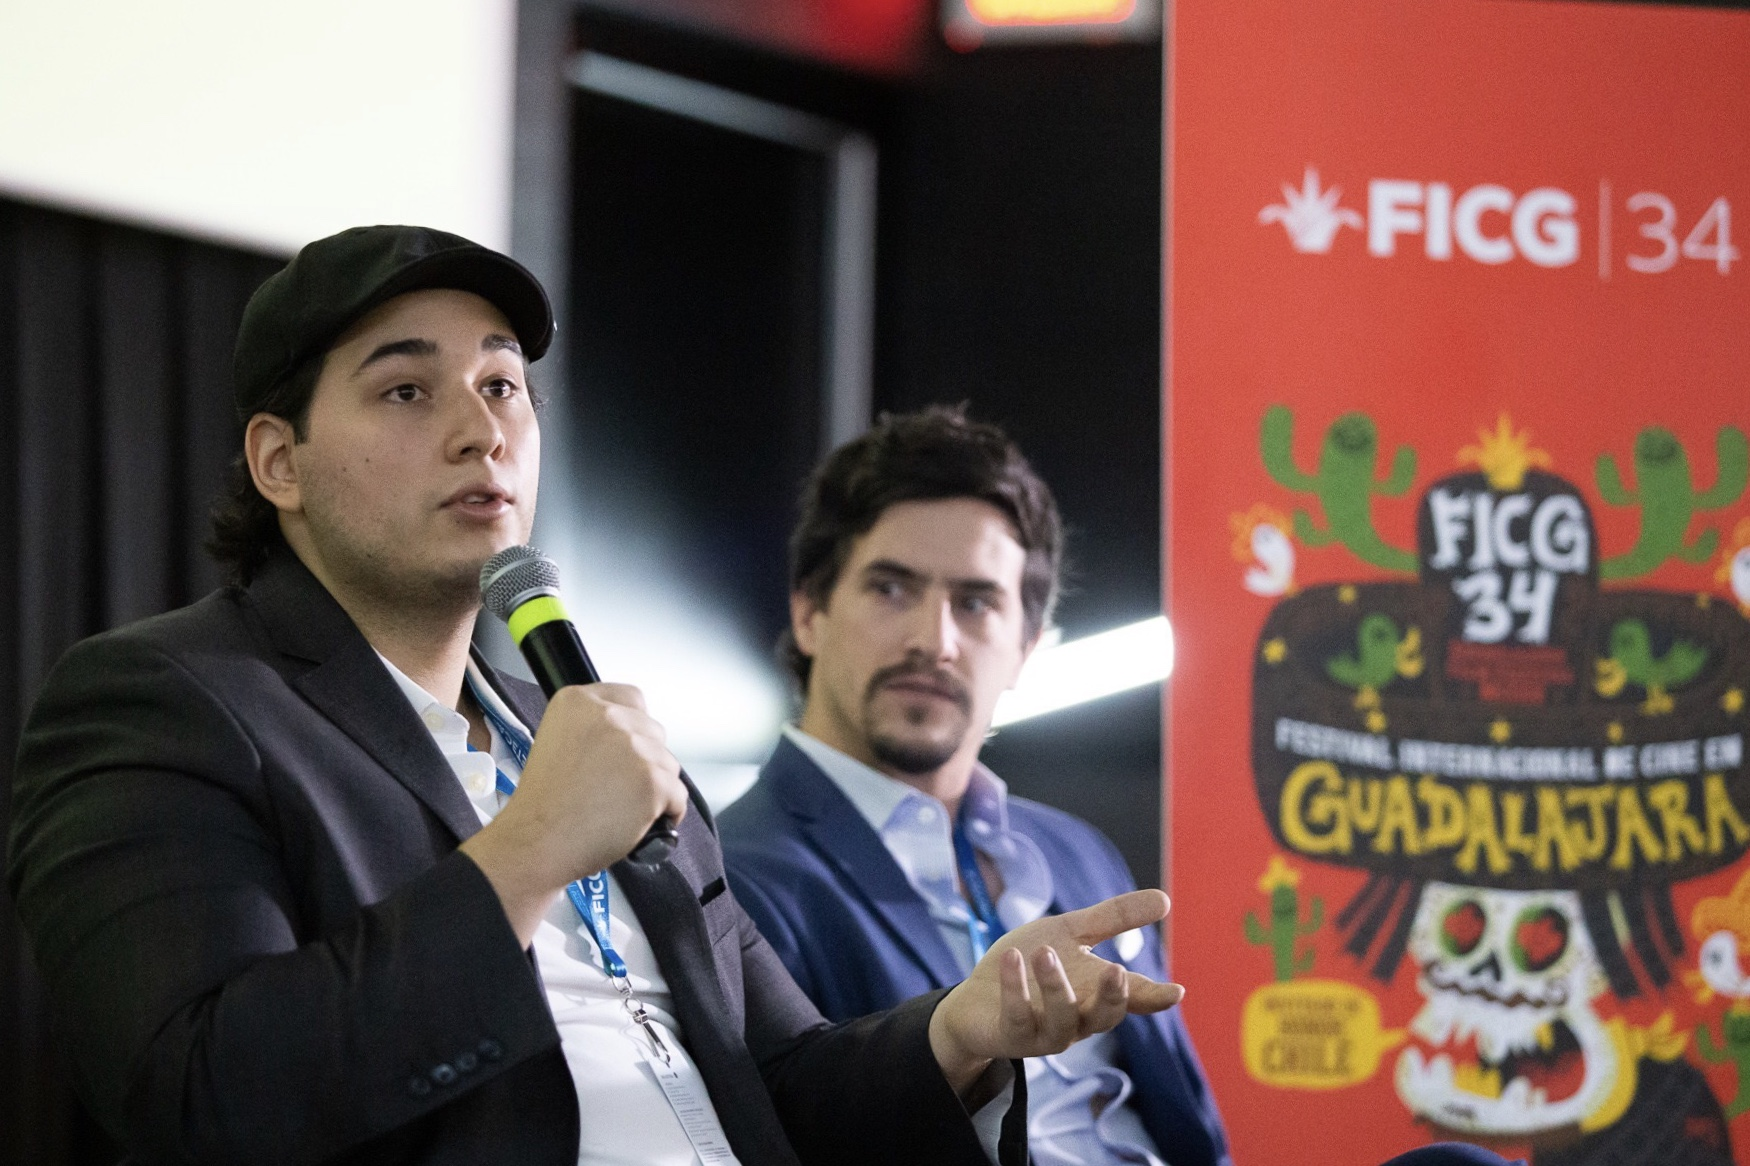 """Screening of """"Forgiveness"""" (Work In Progress) followed by Q&A with director/producer Alex Kahuam and producer Santiago Ortiz-Monasterio at the Guadalajara International Film Festival"""